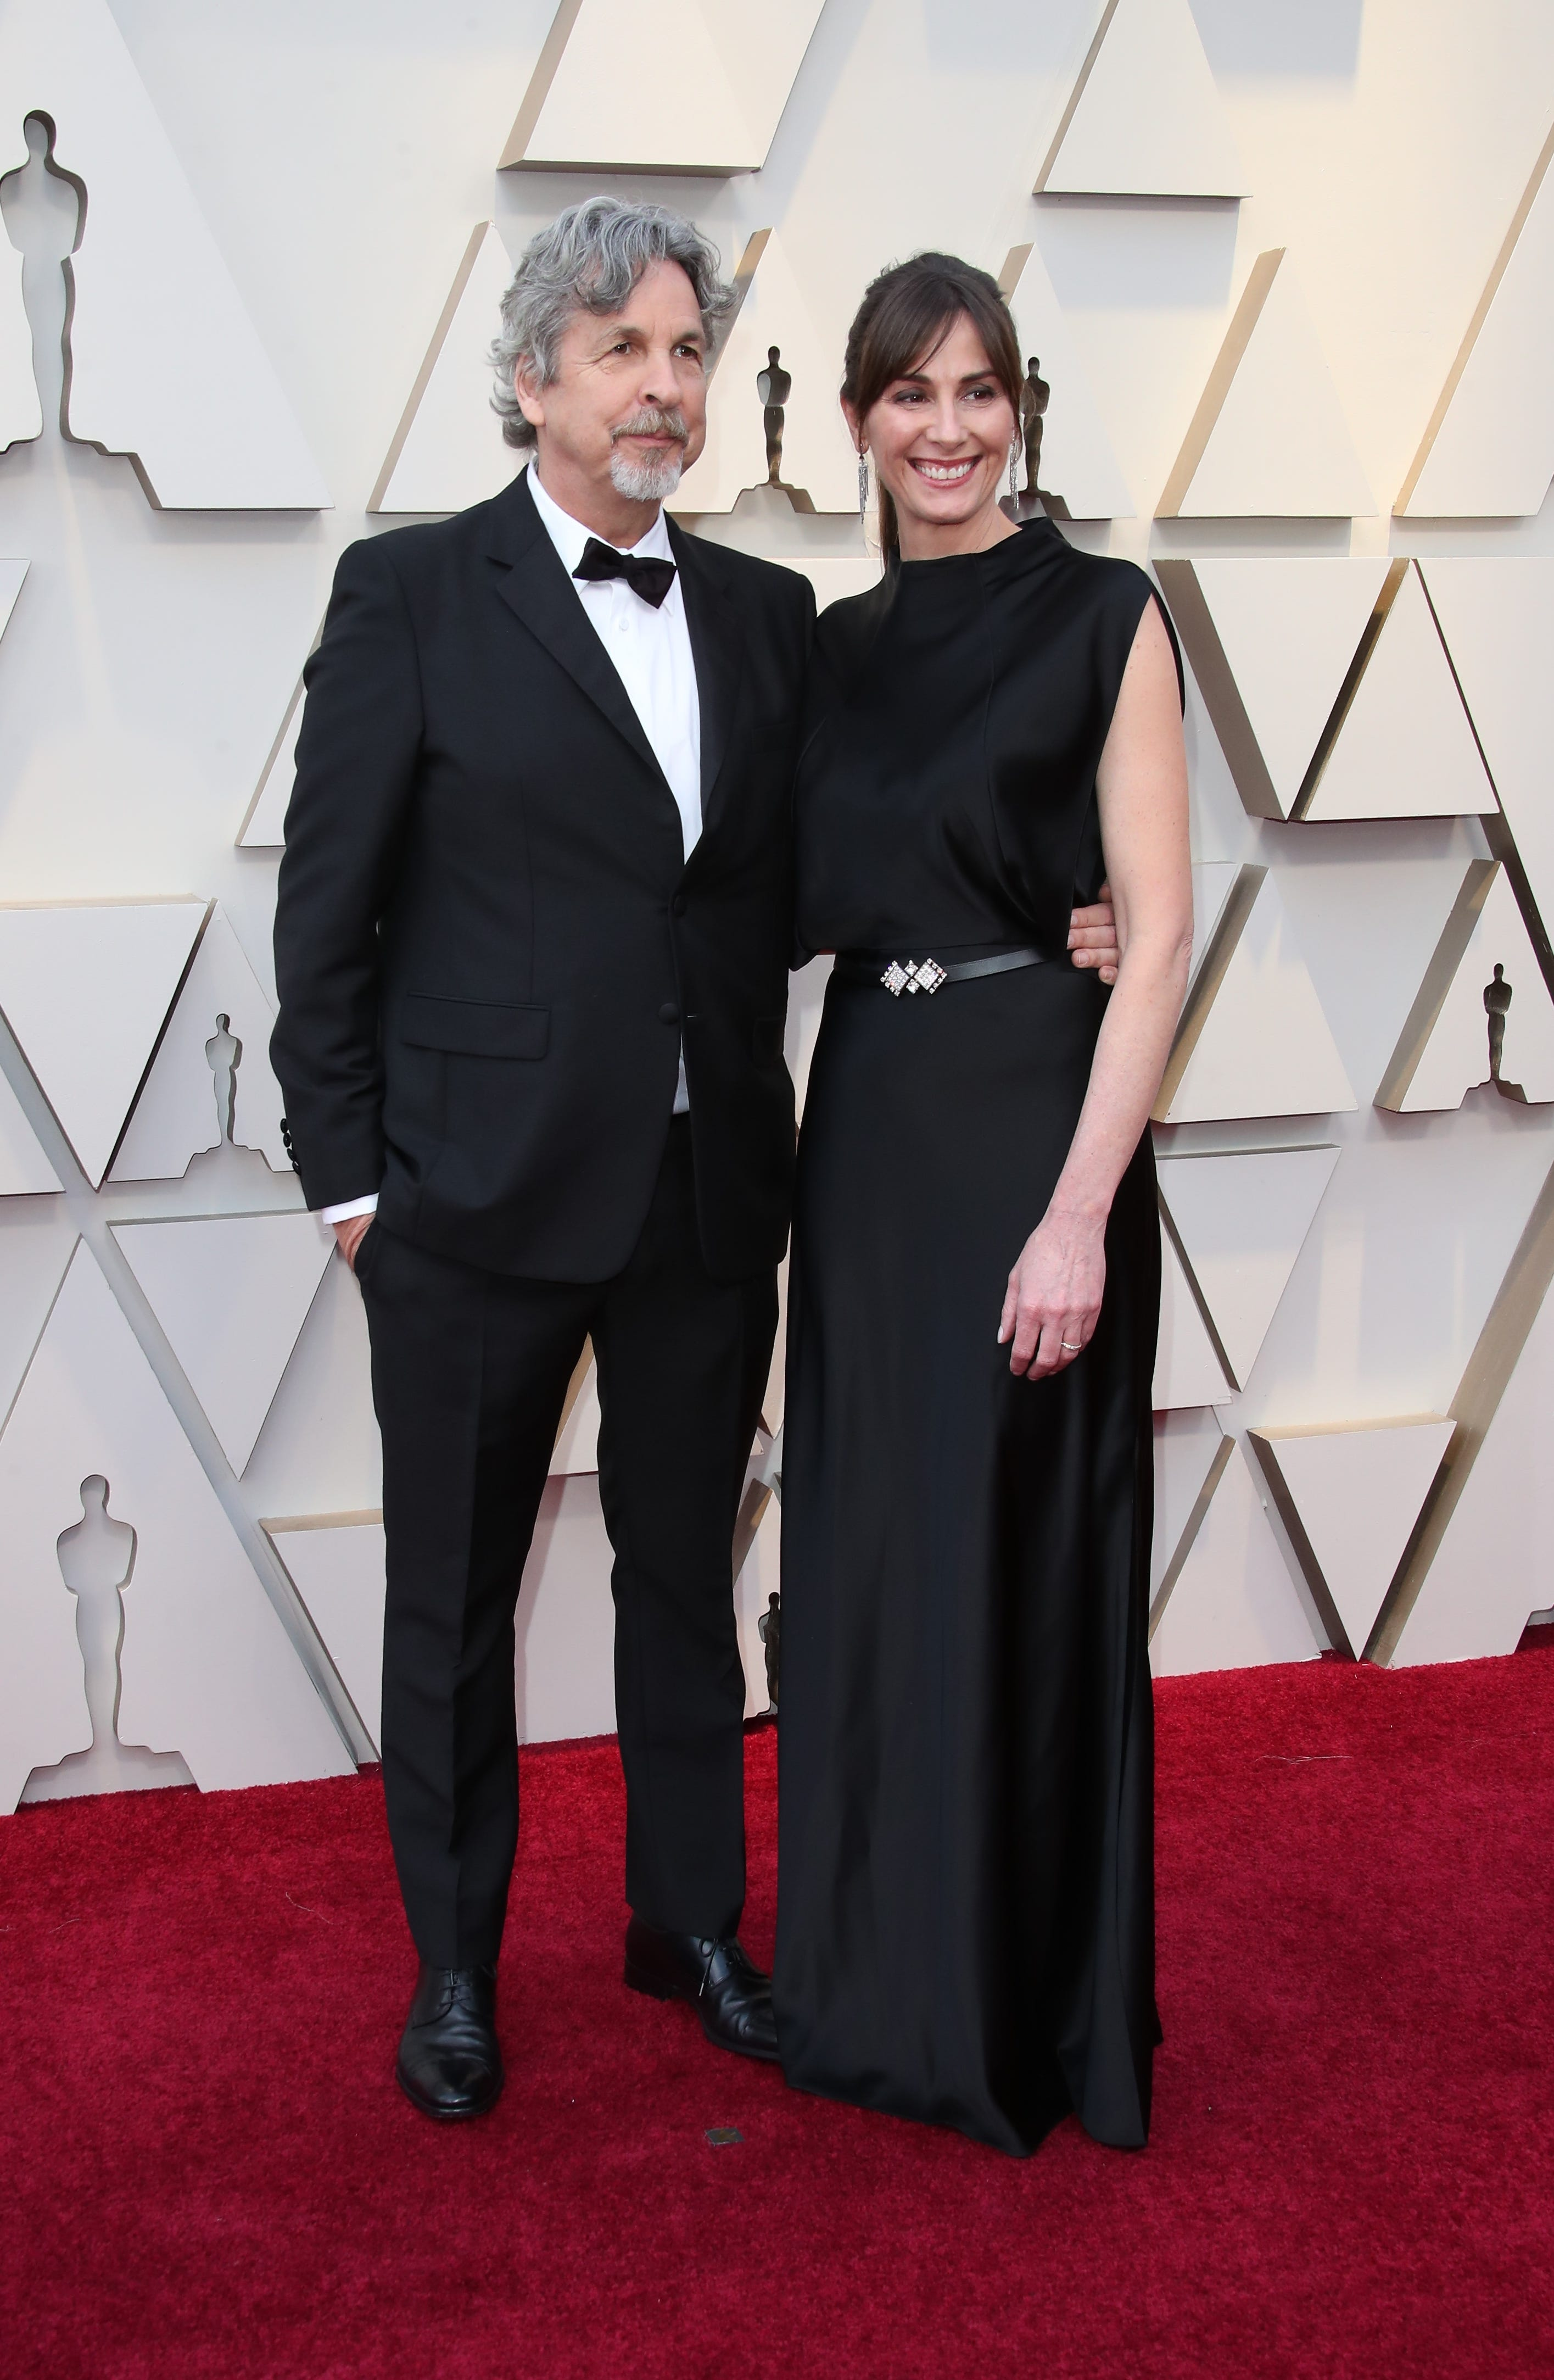 February 24, 2019; Los Angeles, CA, USA; Peter Farrelly, left and Melinda Farrelly arrive at the 91st Academy Awards at the Dolby Theatre. Mandatory Credit: Dan MacMedan-USA TODAY NETWORK (Via OlyDrop)